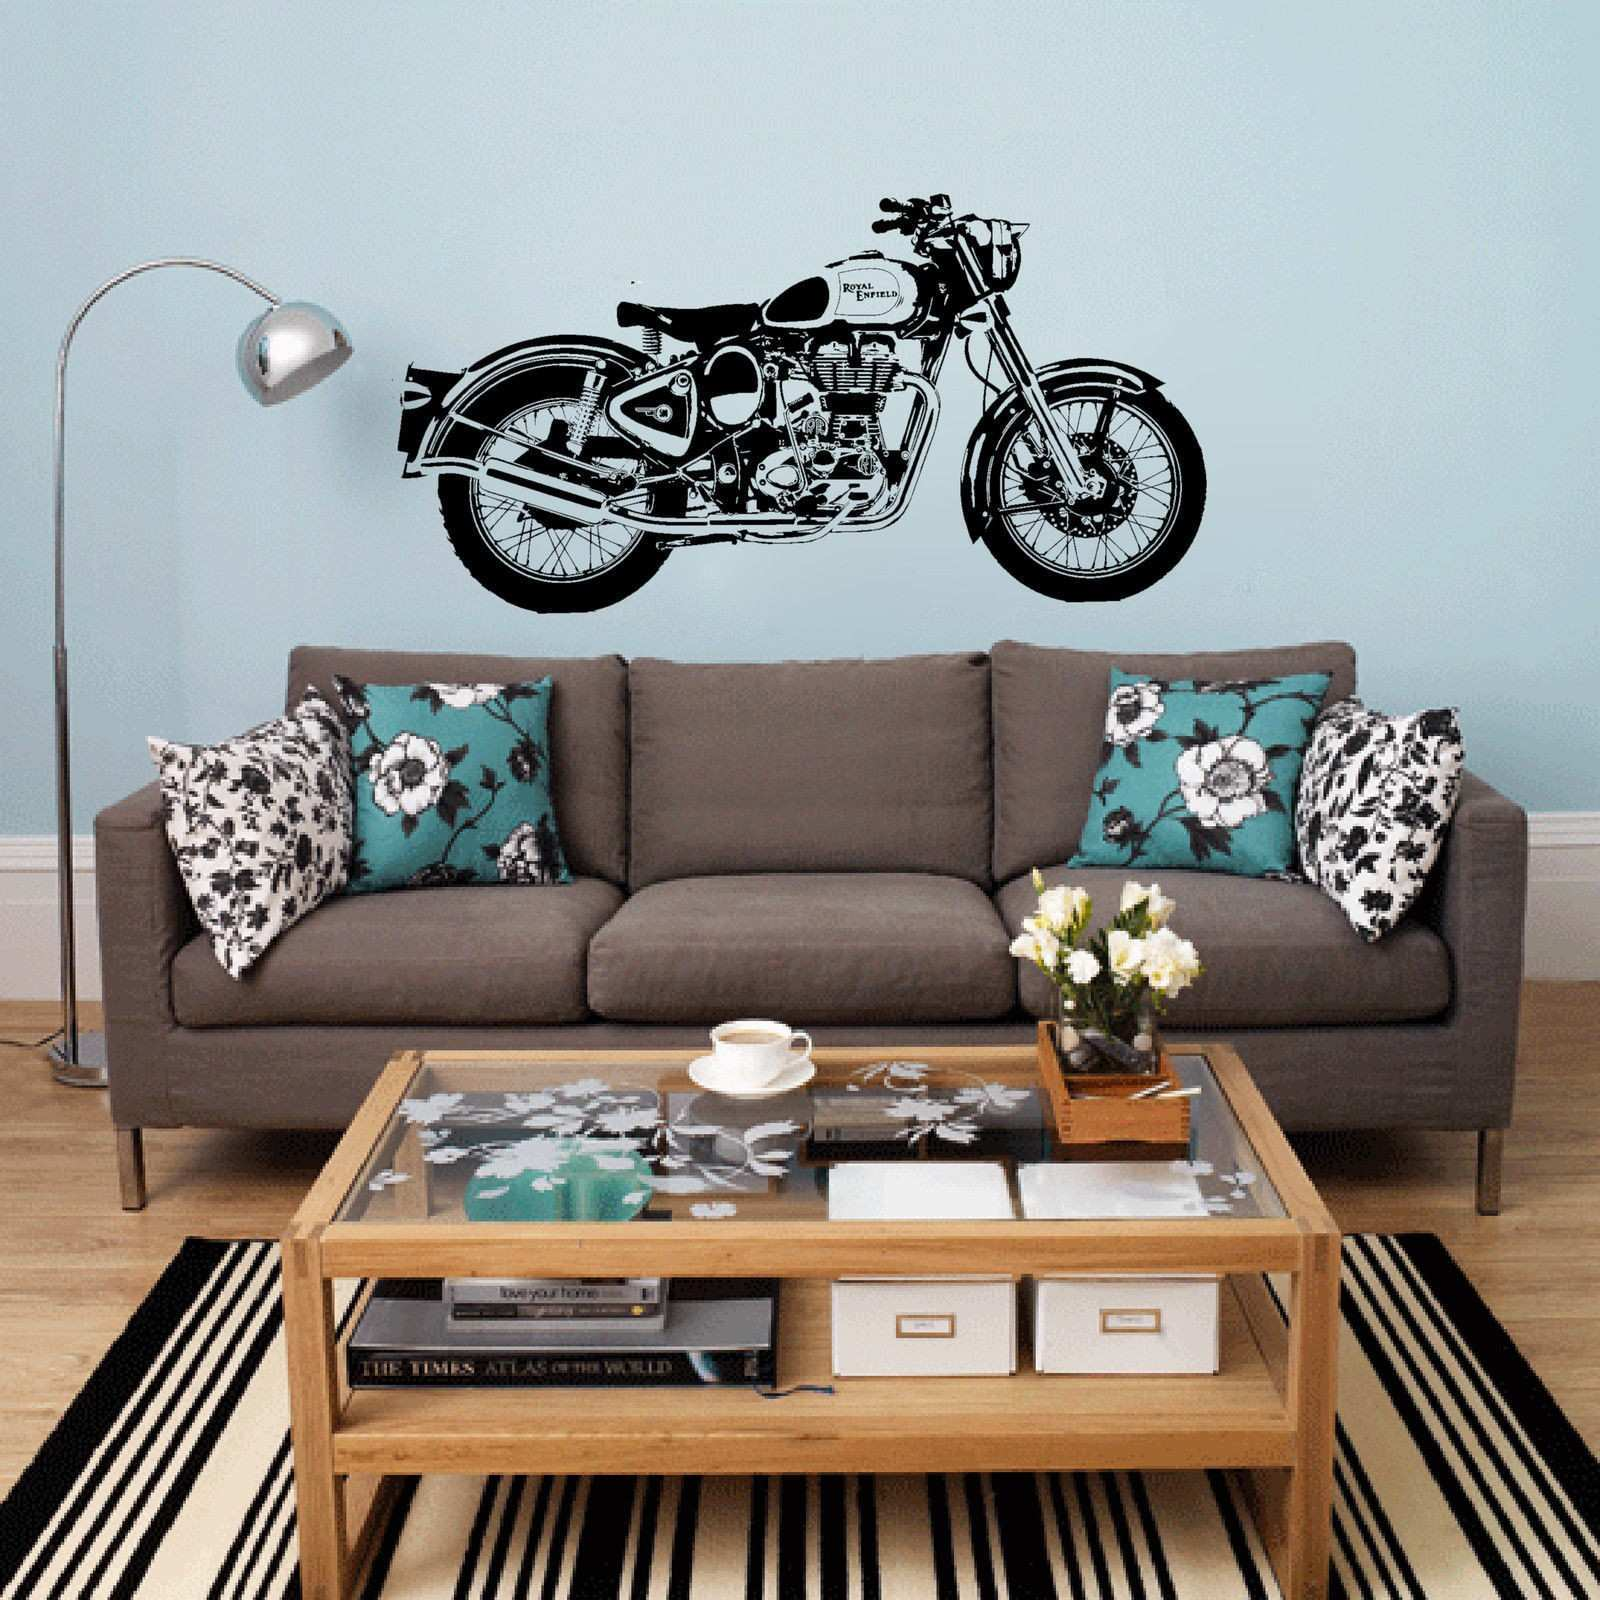 D3681 Motorbike Wall Art Sticker Classic English Motorcycle Decal